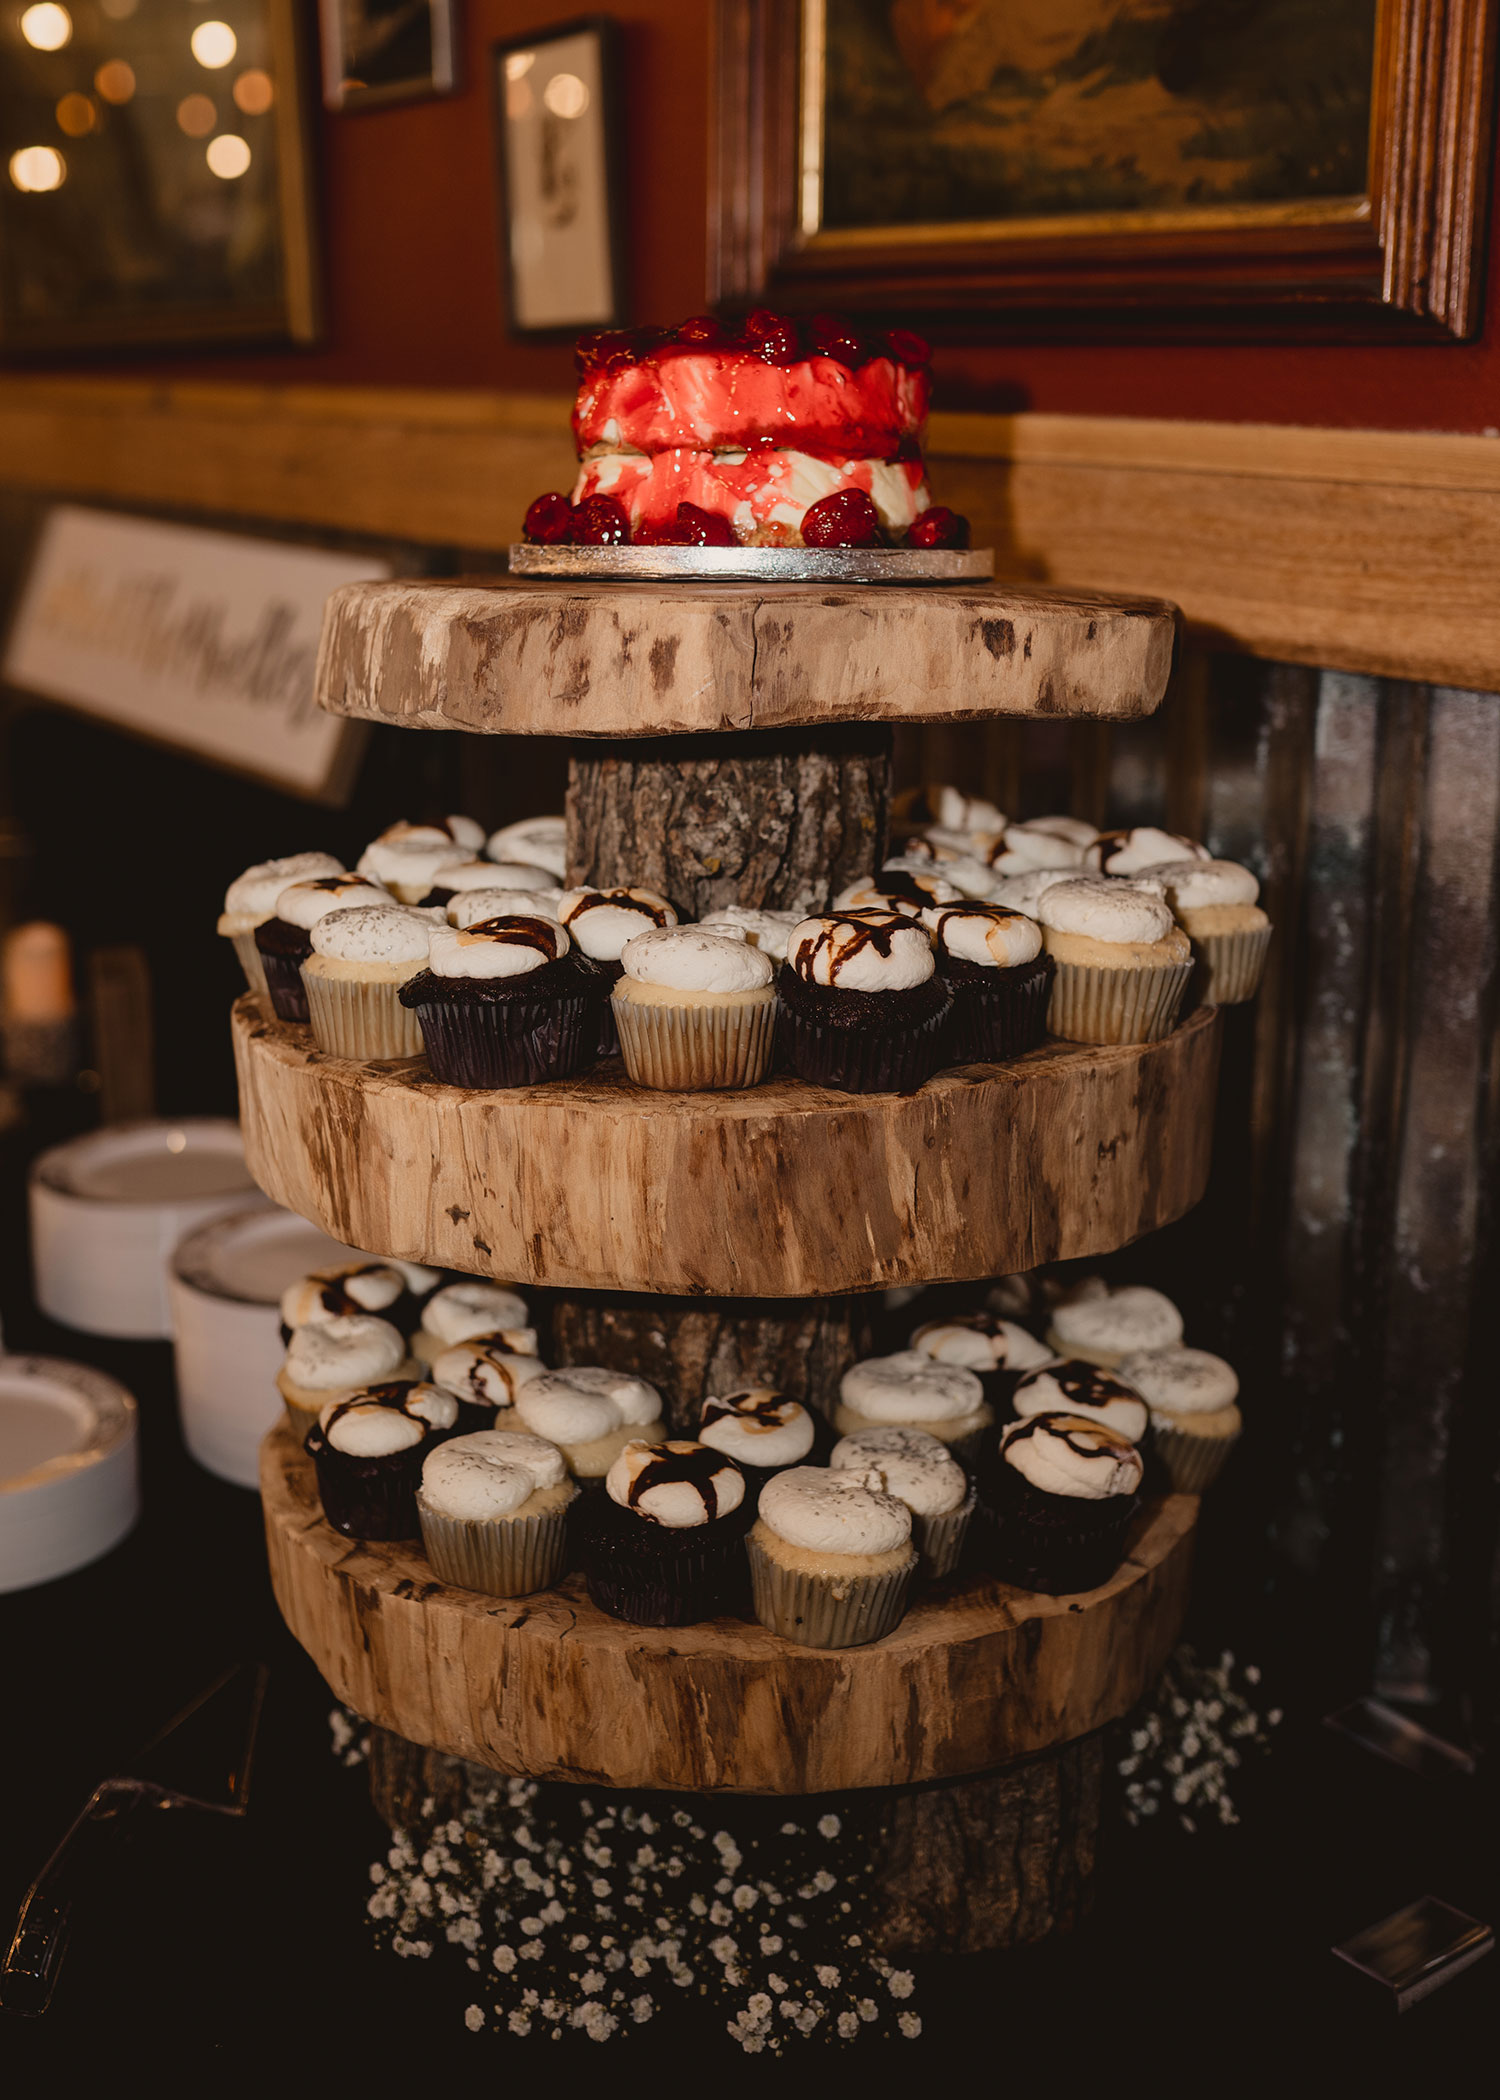 cheesecake-dessert-table-decades-event-center-building-desmoines-iowa-raelyn-ramey-photography..jpg